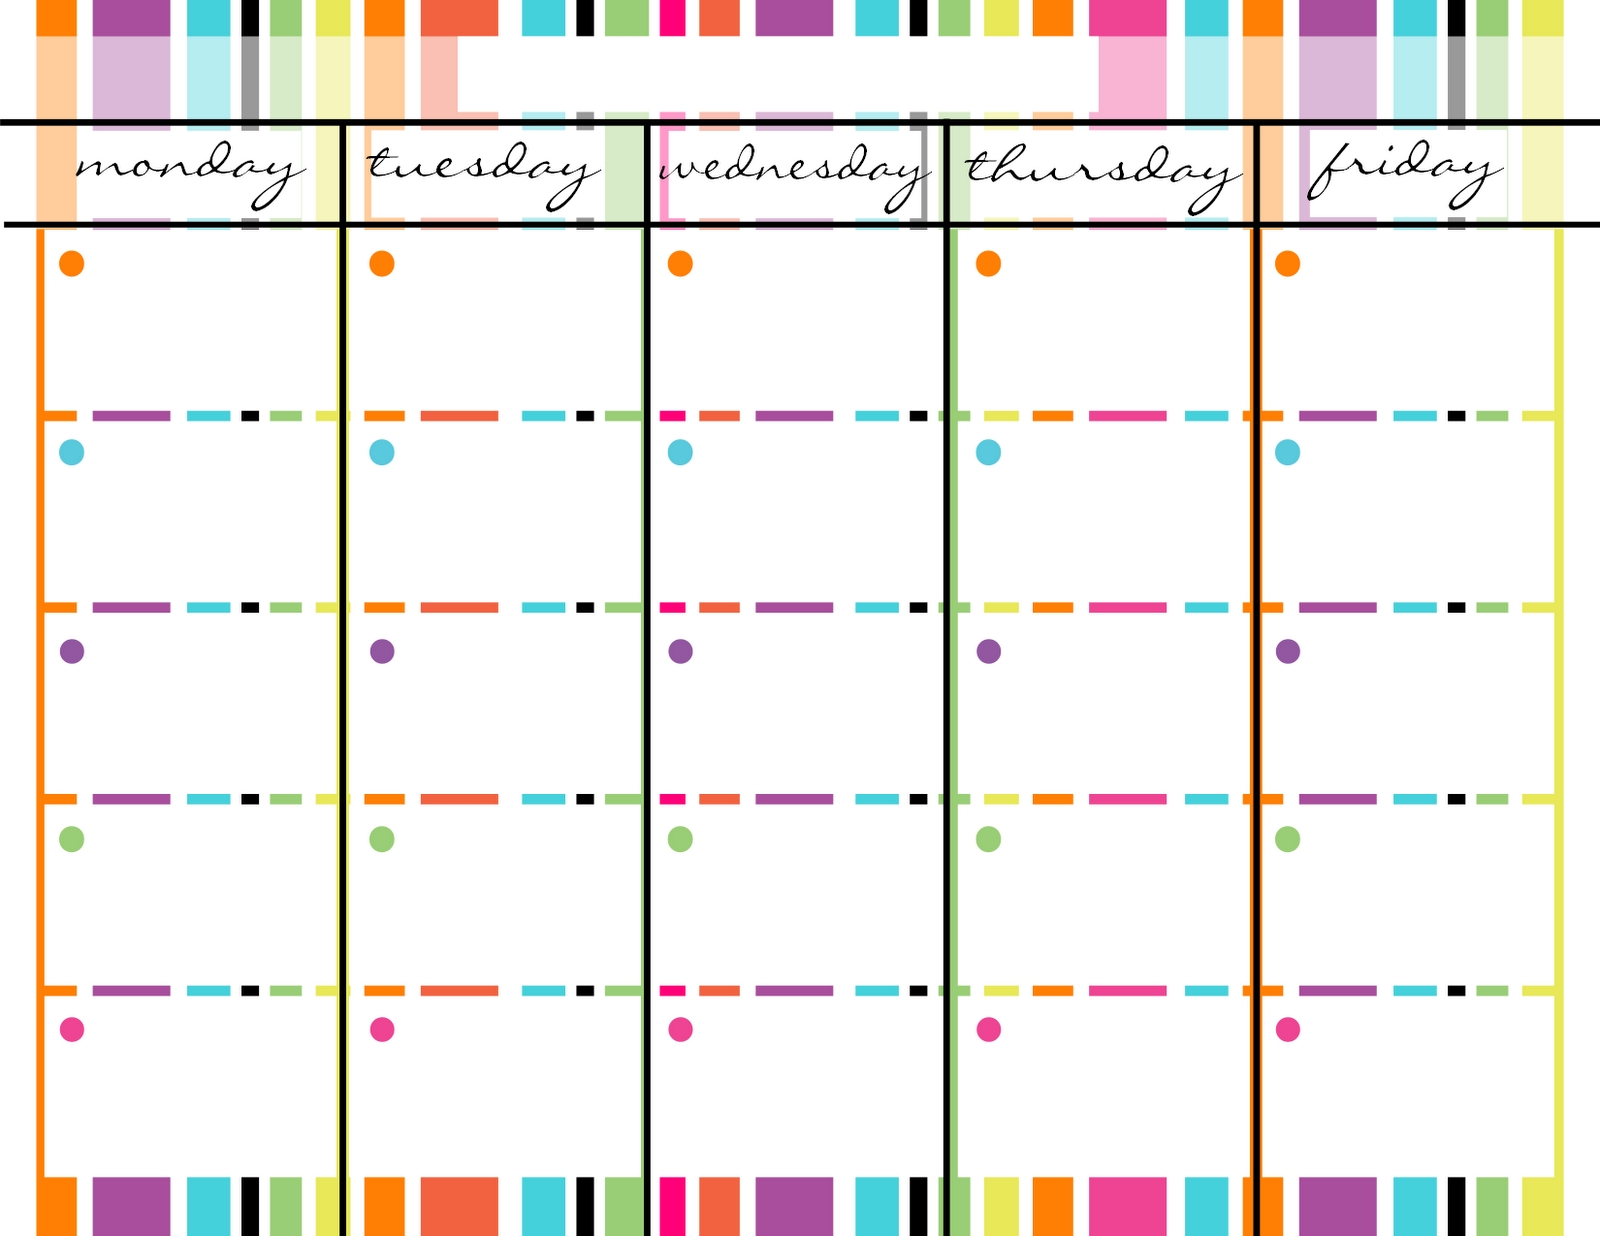 Blank Monday Through Friday Printable Calendar | Calendar